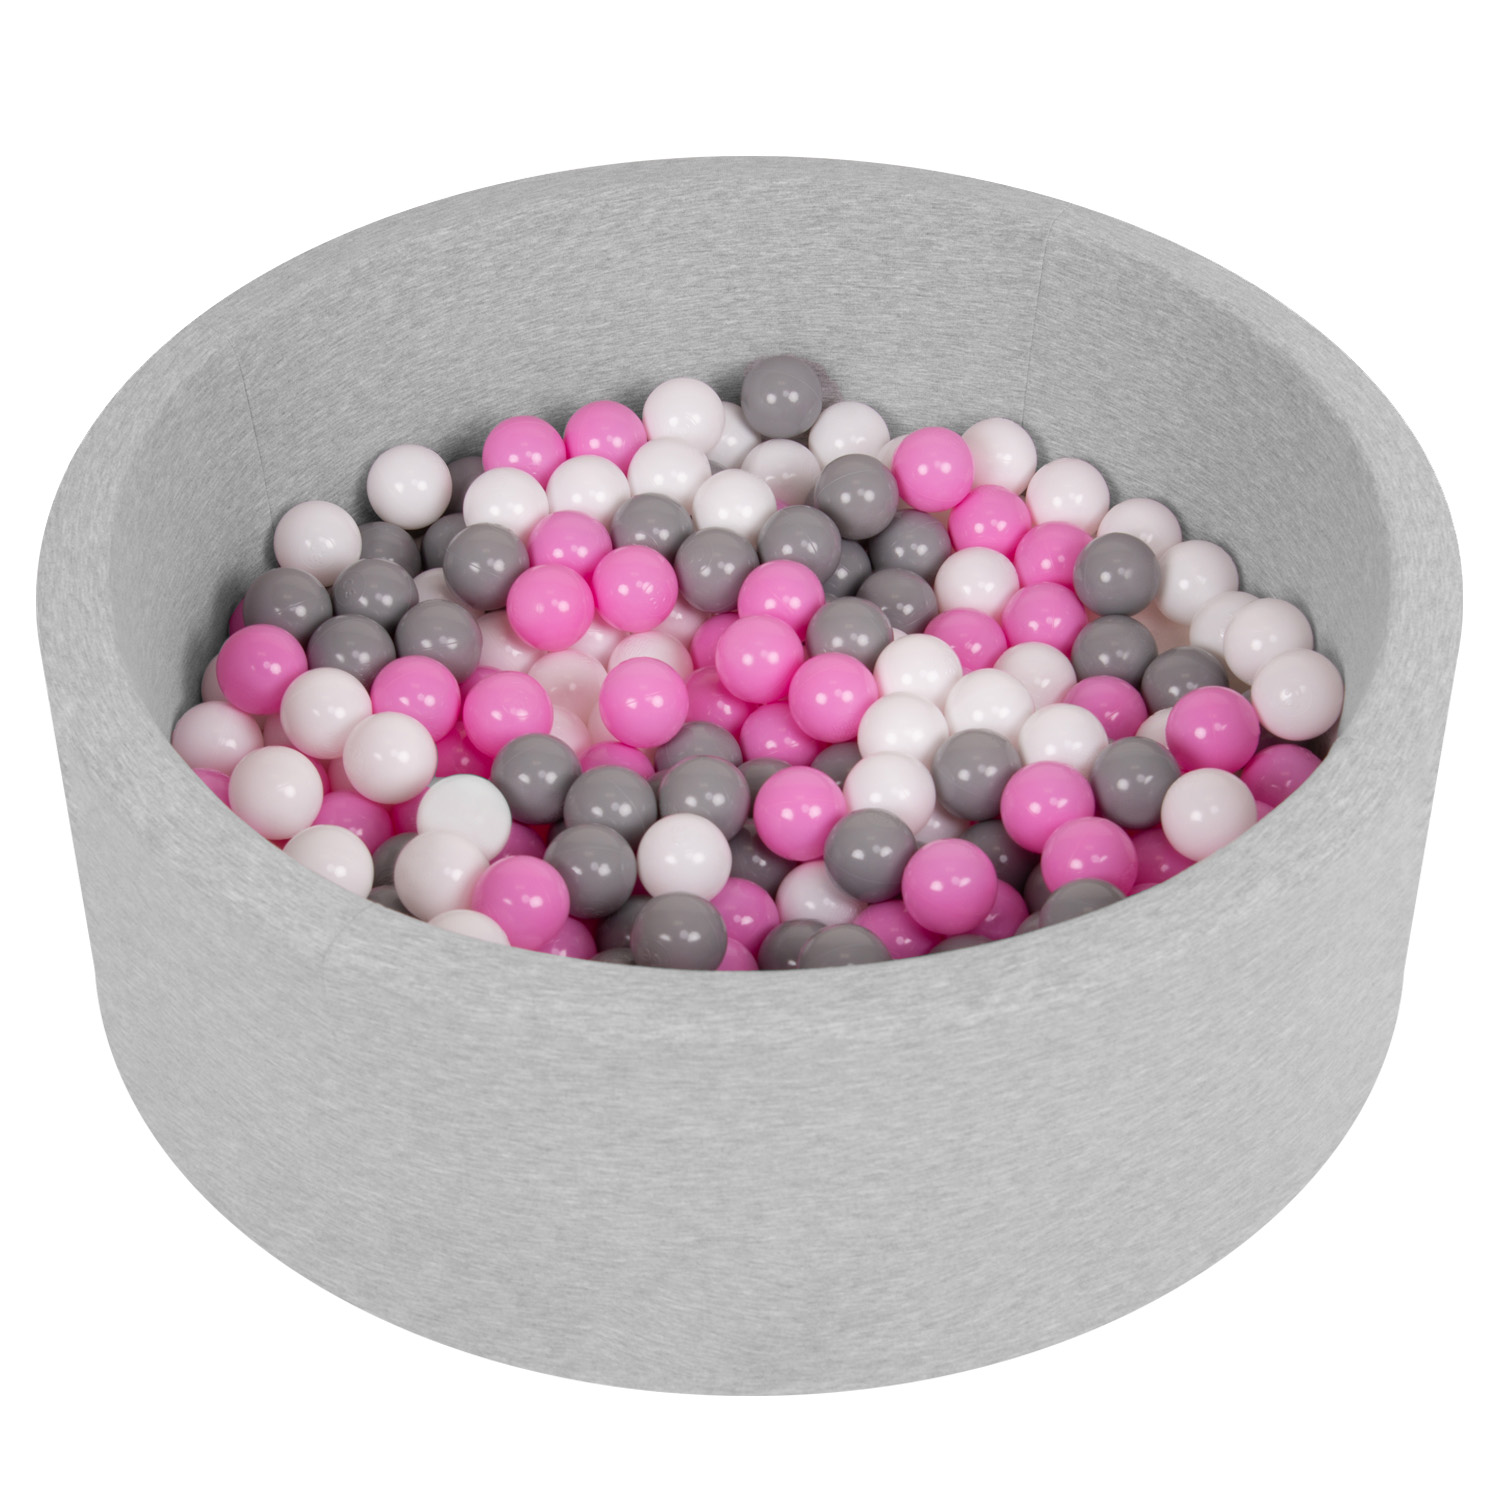 Selonis-Soft-Ball-Pit-Pool-Round-90x30cm-for-Baby-Toddler-200-Balls-Foam miniatuur 5